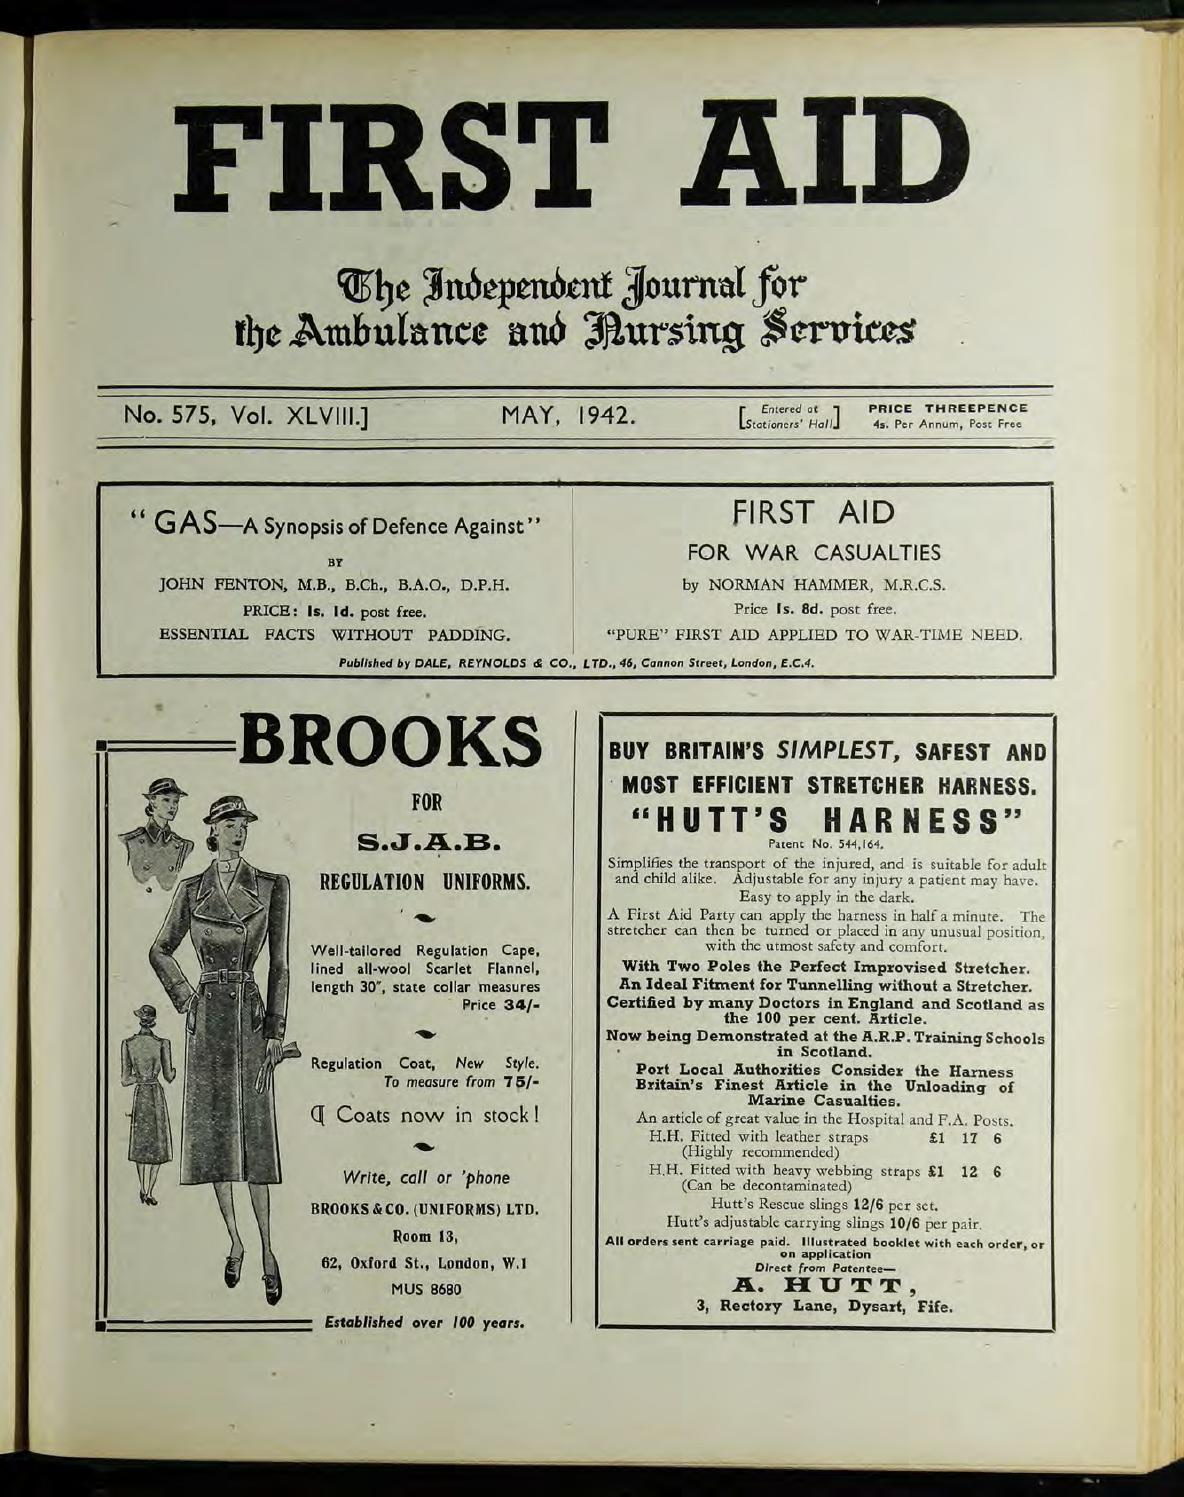 Arte Journal Junior Fr First Aid Journal 1942 1943 By Museum Of The Order Of St John